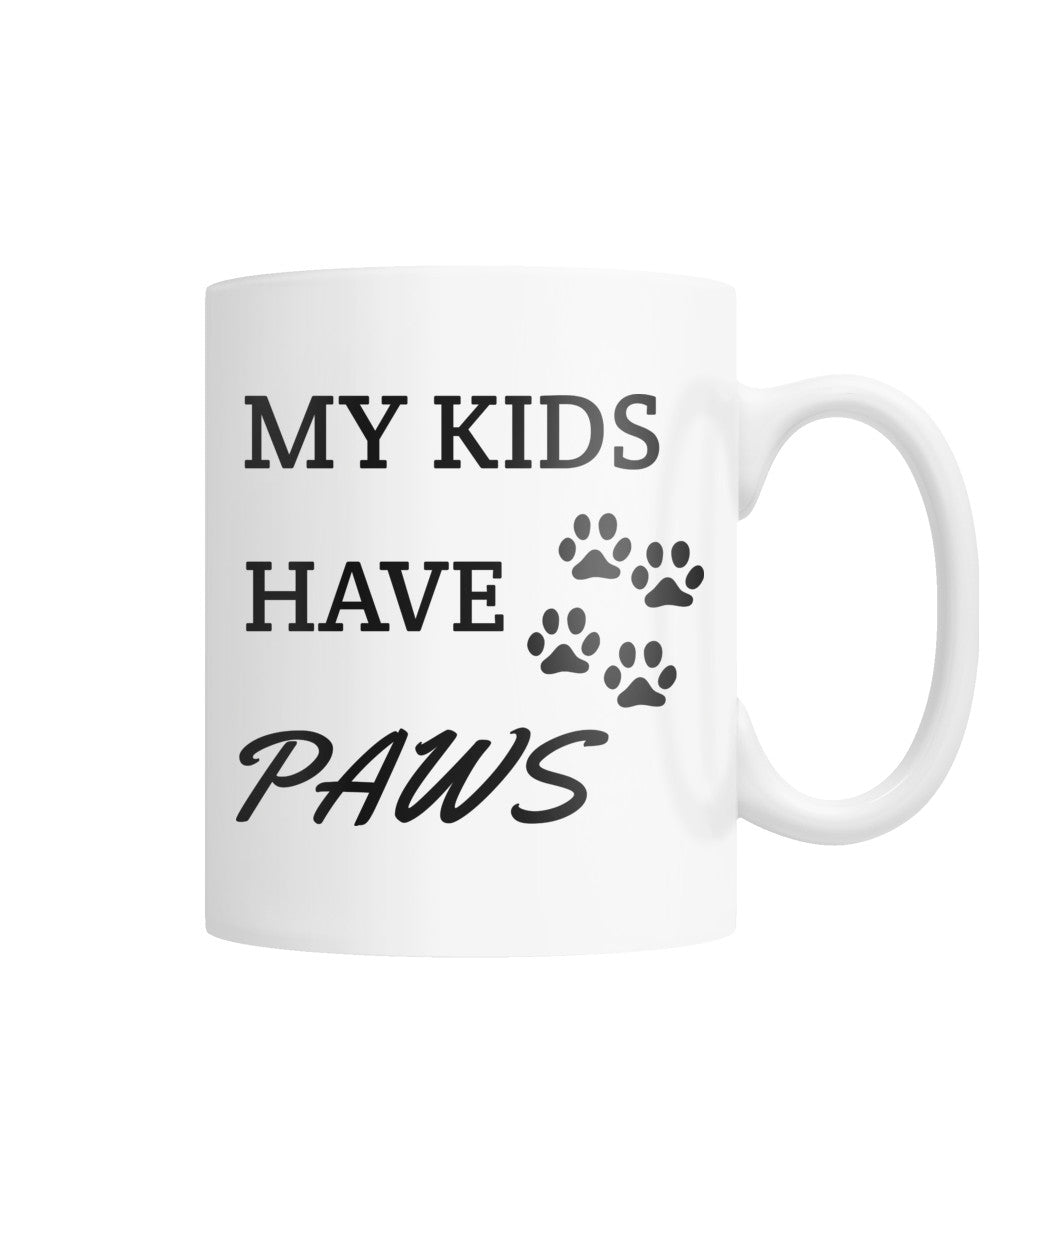 My Kids Have Paws - Mug White Coffee Mug